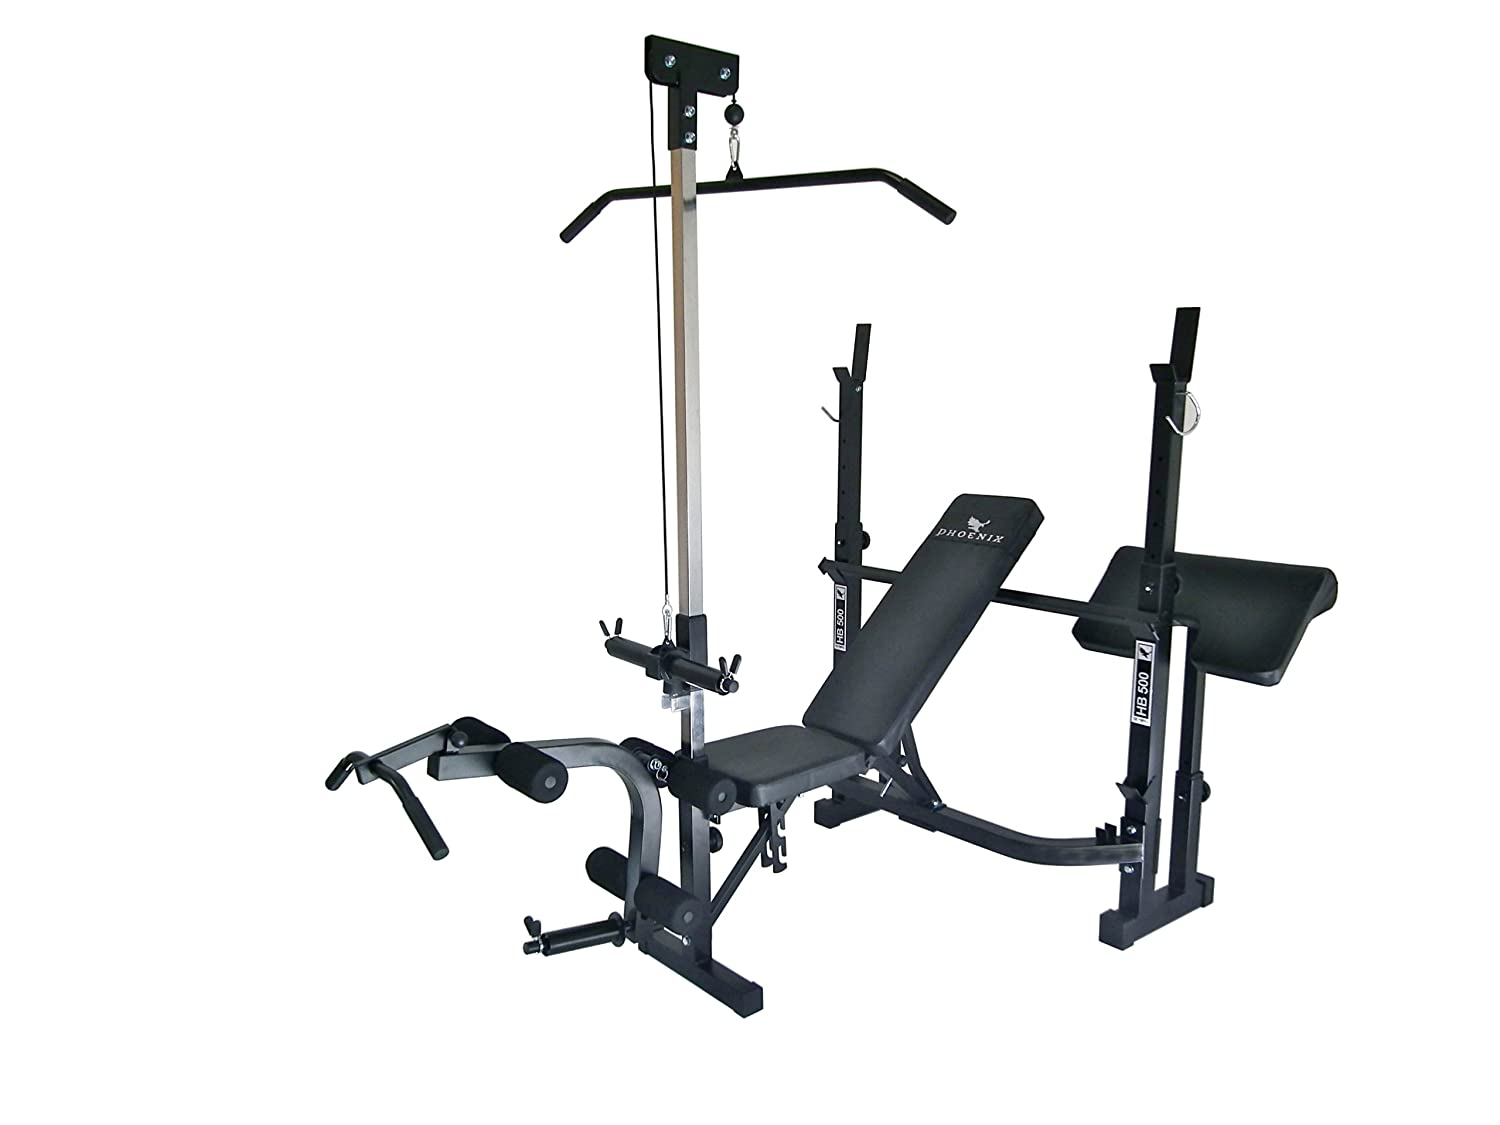 Amazon.com : Phoenix 99225 Power Bench Mid Width : Adjustable Weight  Benches : Sports & Outdoors